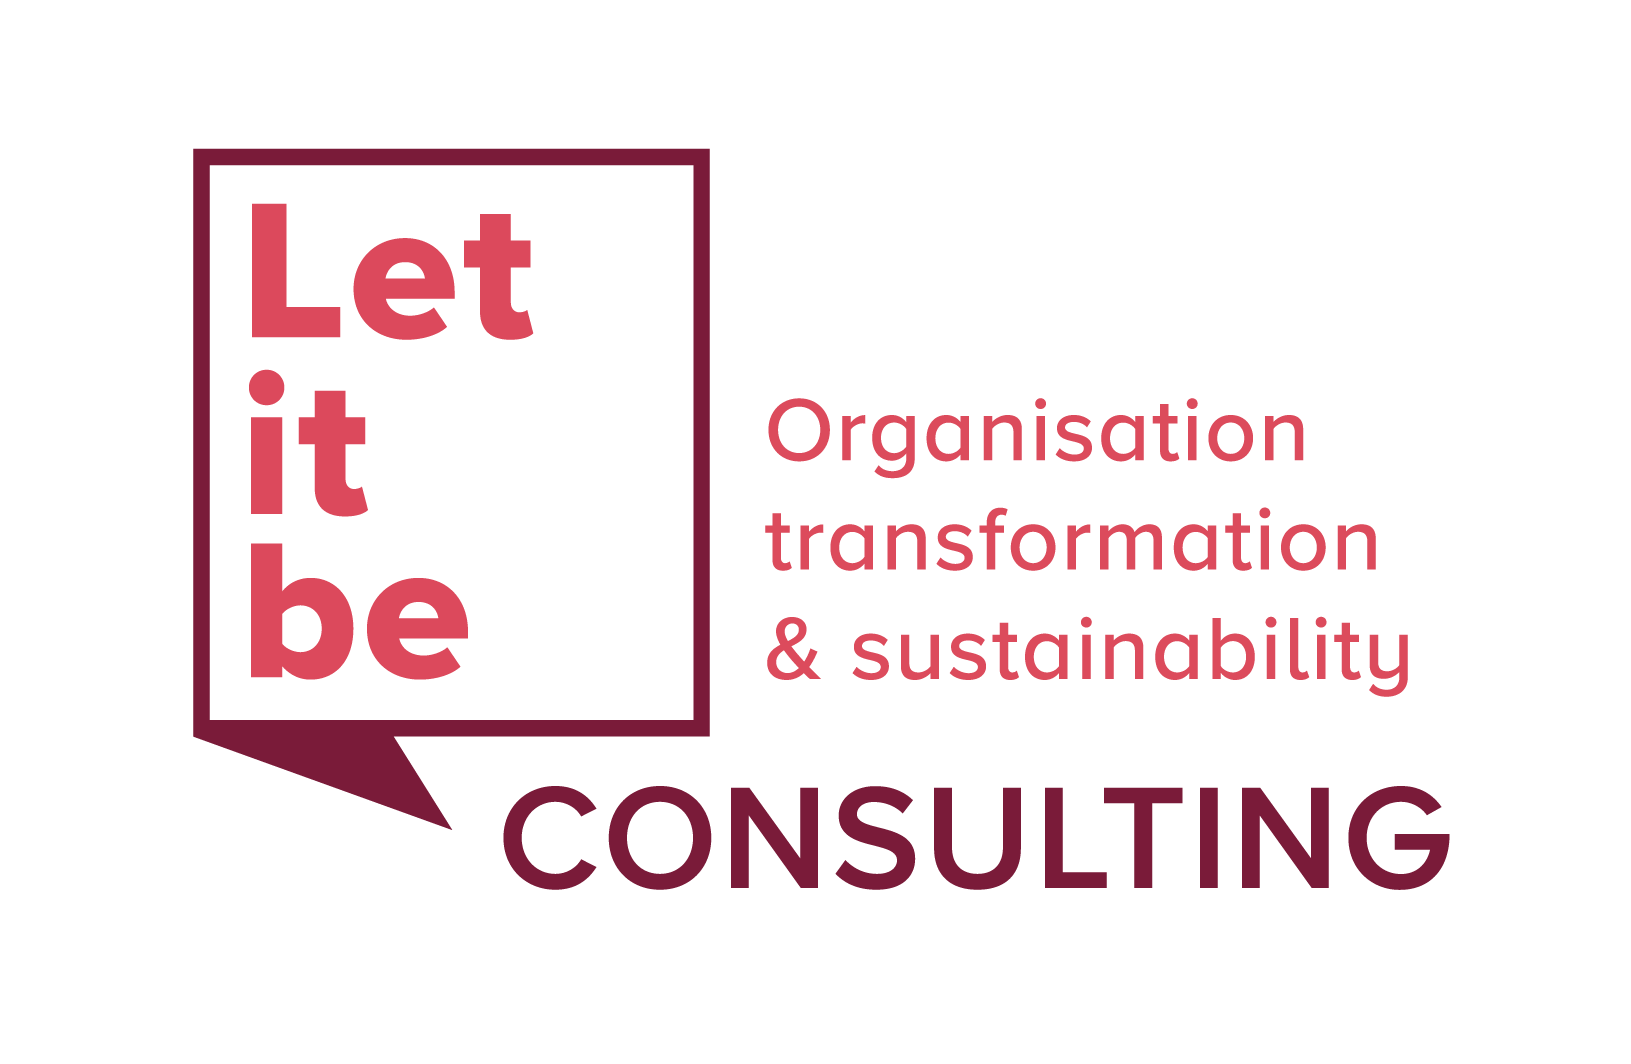 Let It be consulting